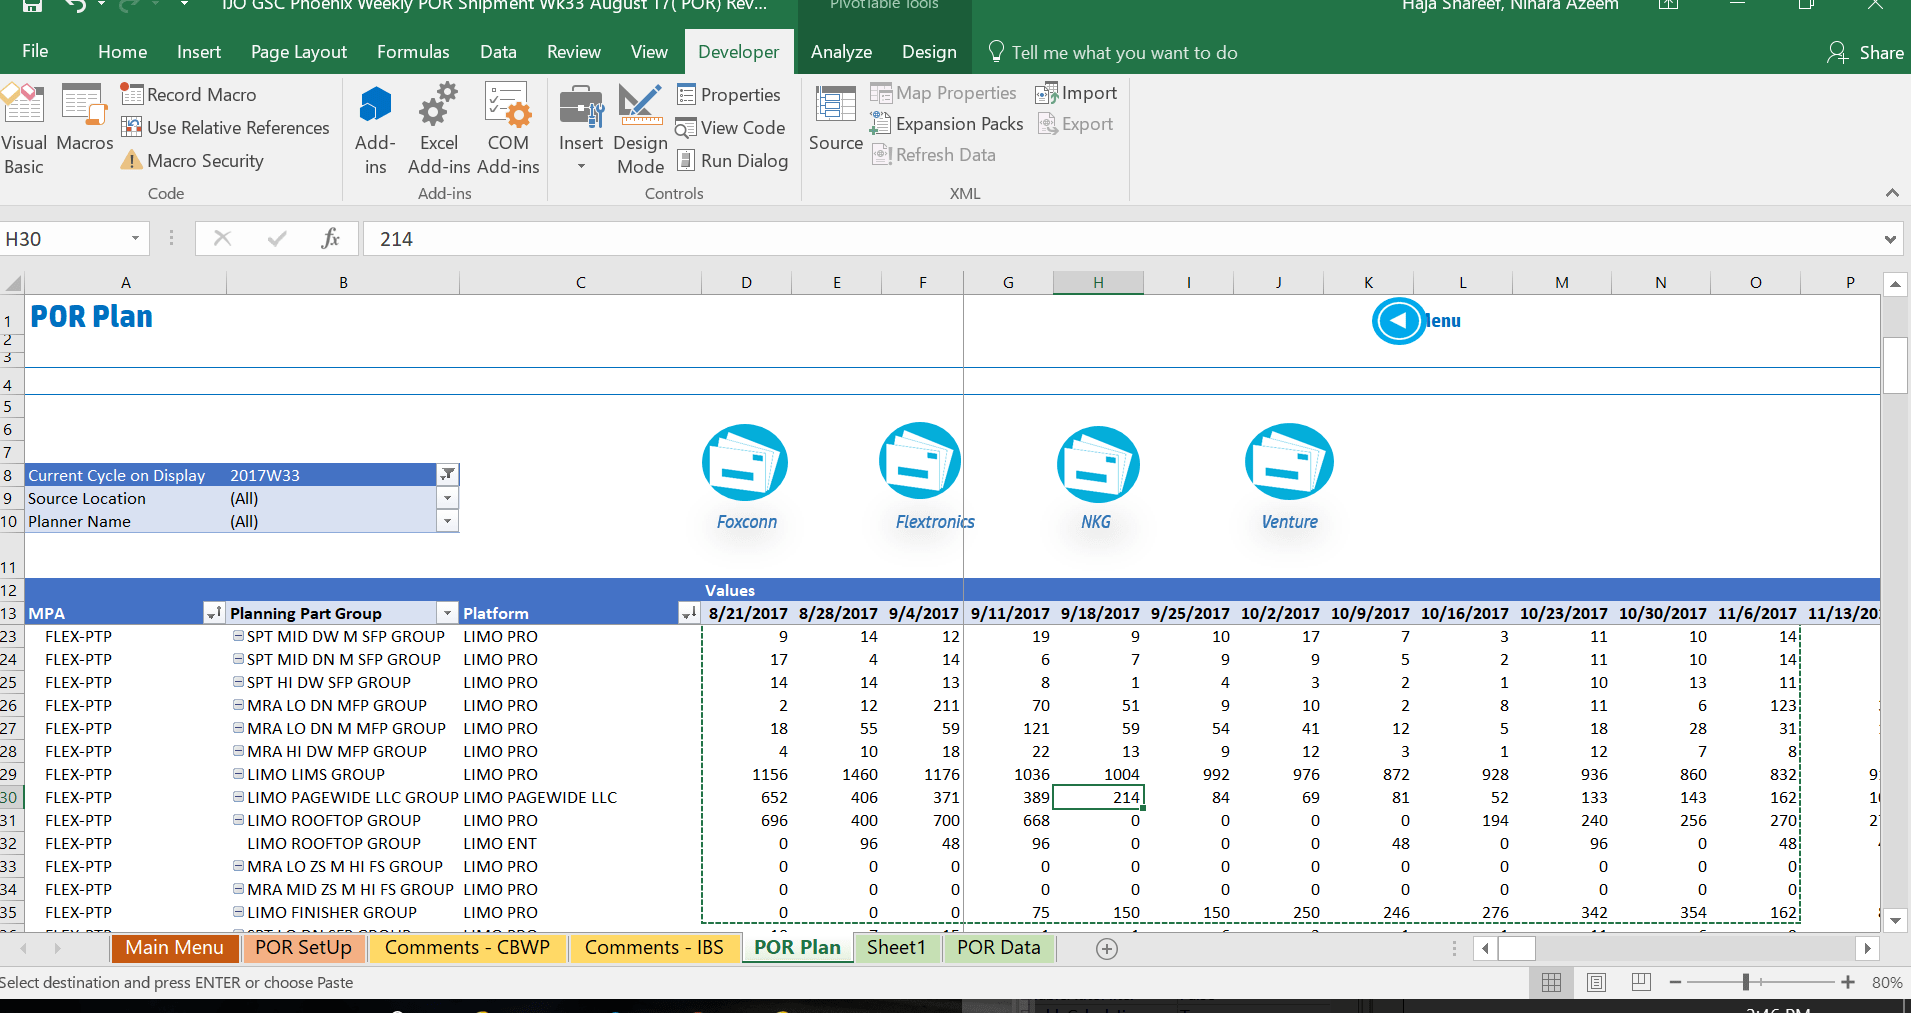 Tranpose Excel Worksheet To Access